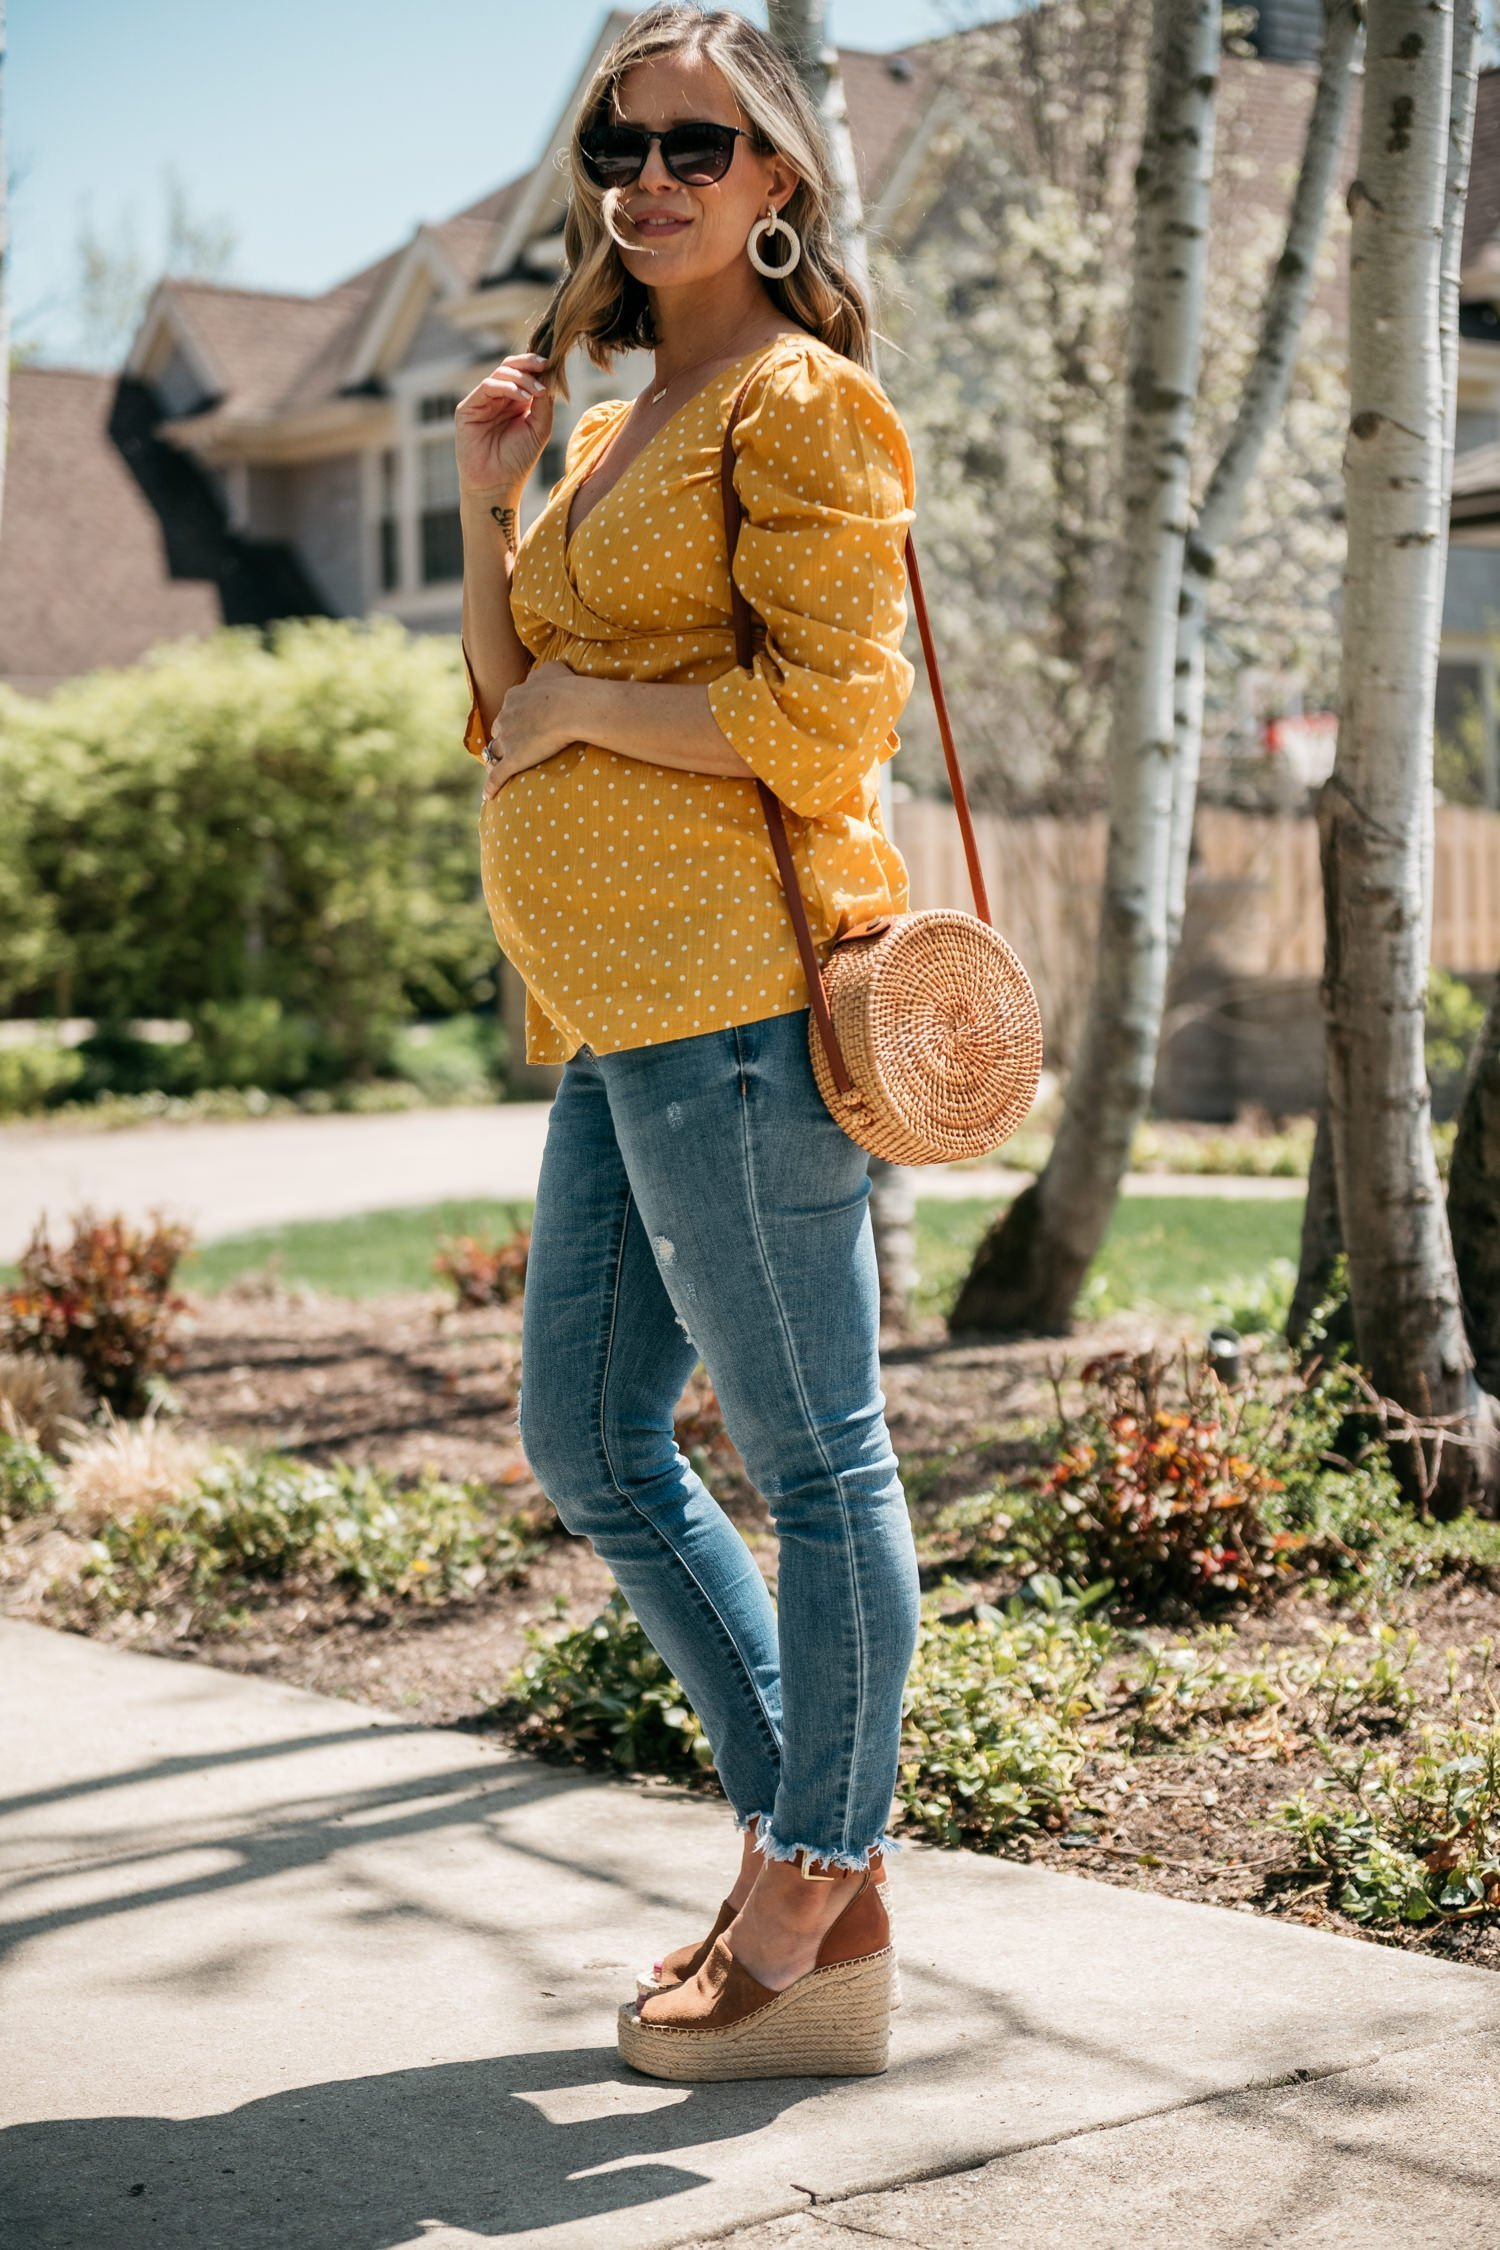 The perfect yellow maternity top, jeans, and espadrille wedges